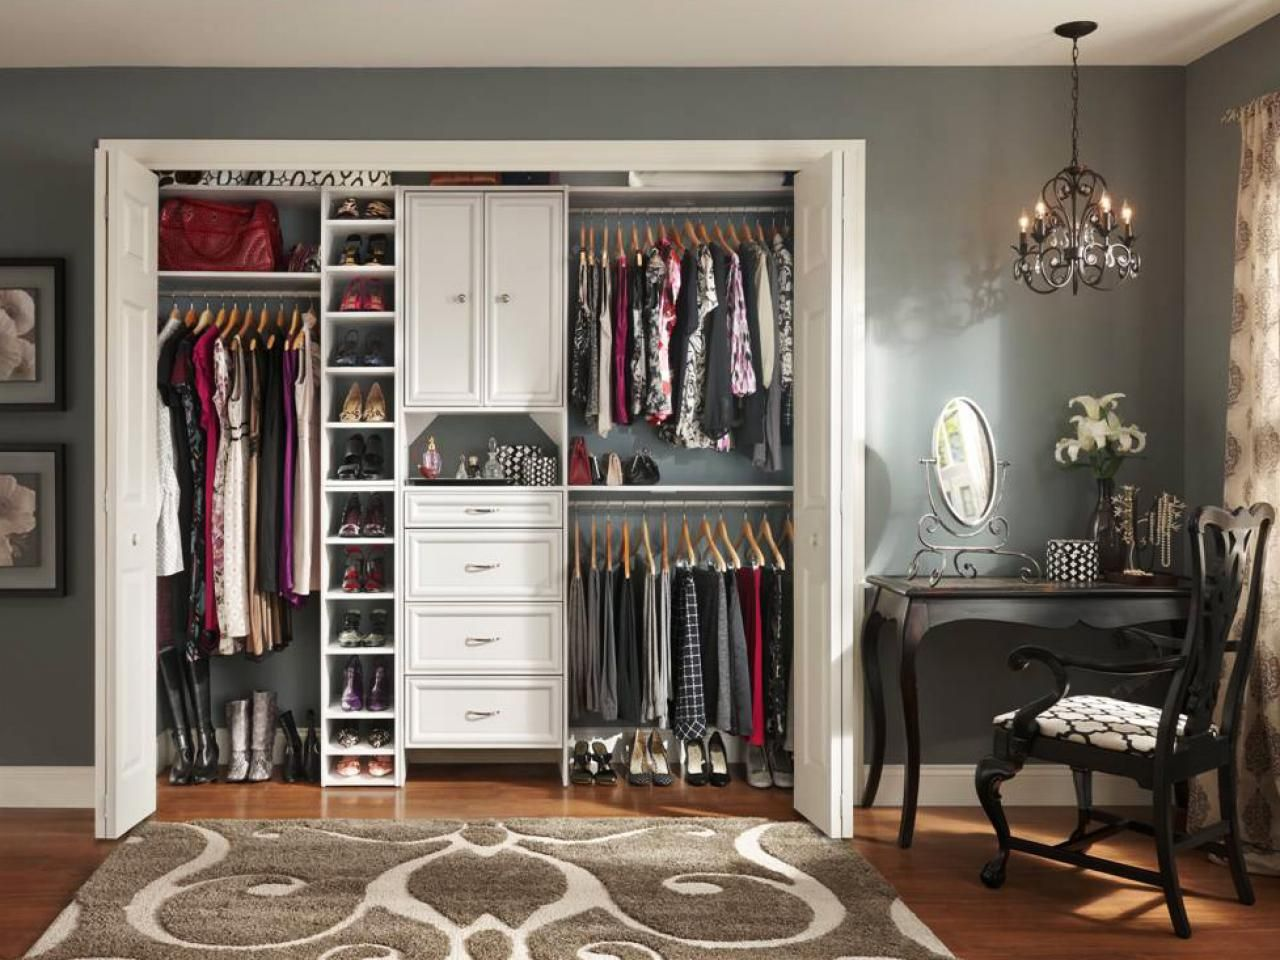 Small bedroom closet storage ideas - 17 Best Ideas About Small Closet Organization On Pinterest Small Closet Design Small Closets And Small Closet Storage